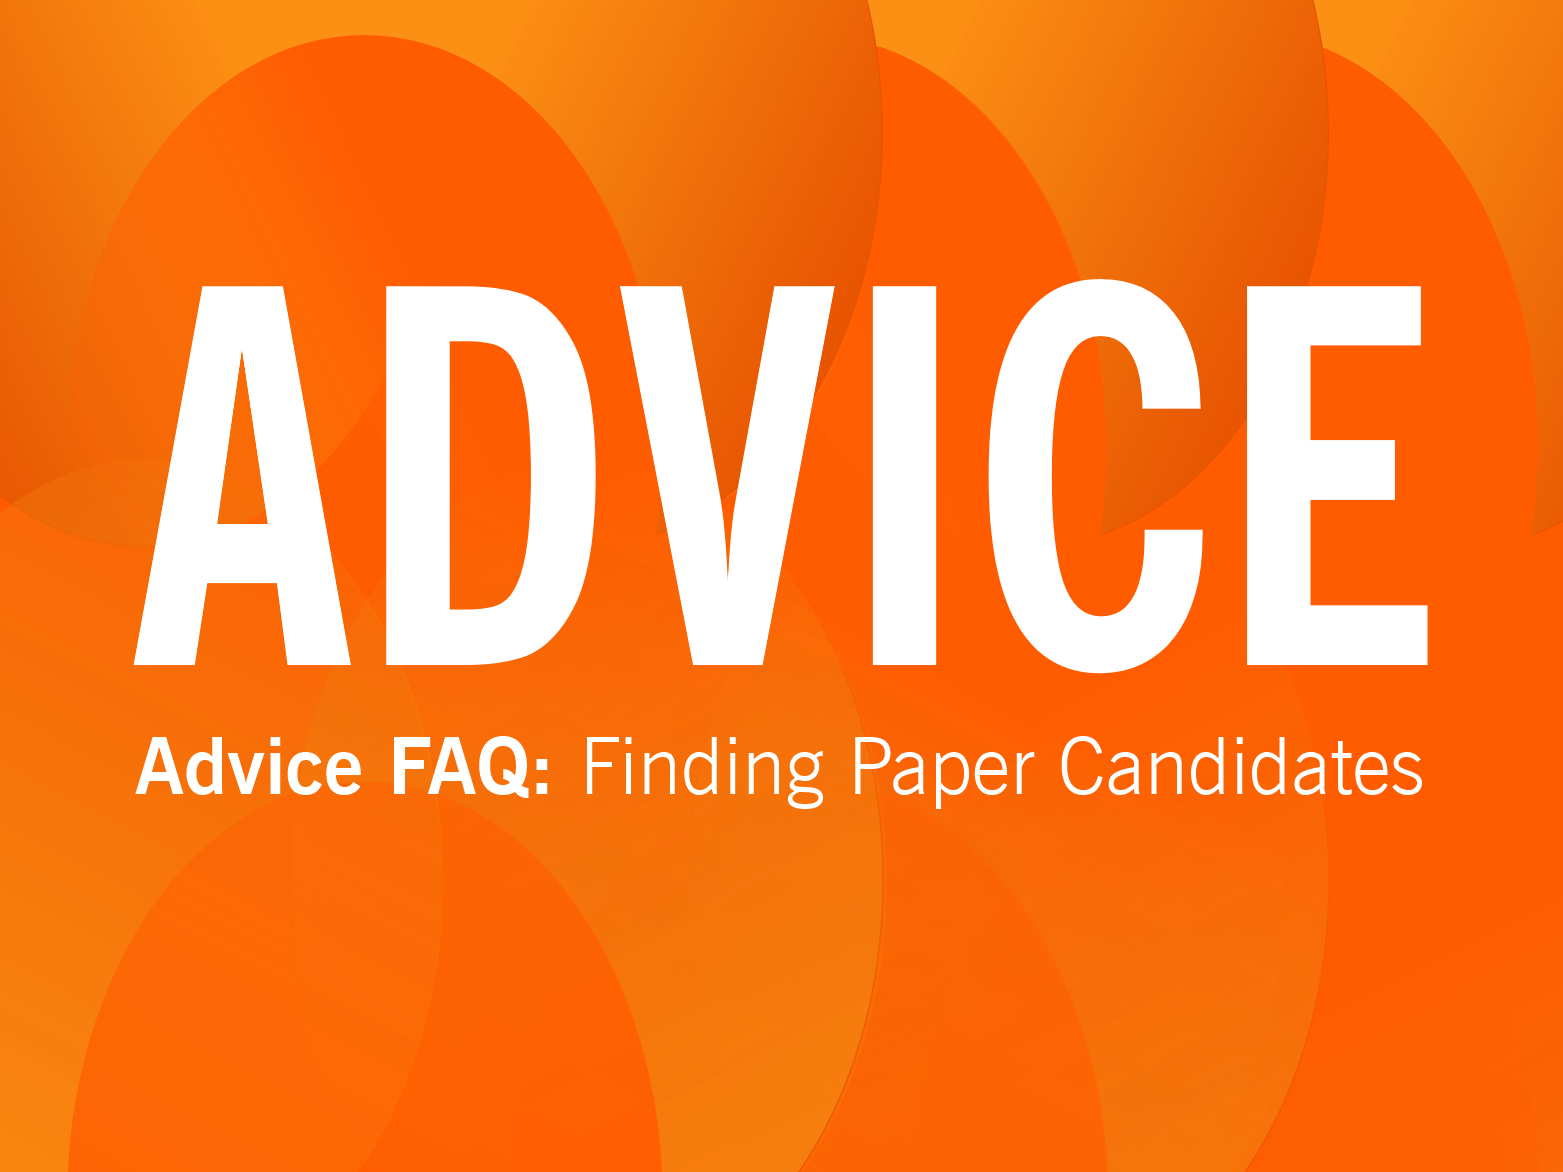 ADVICE: Find your next set of paper candidates